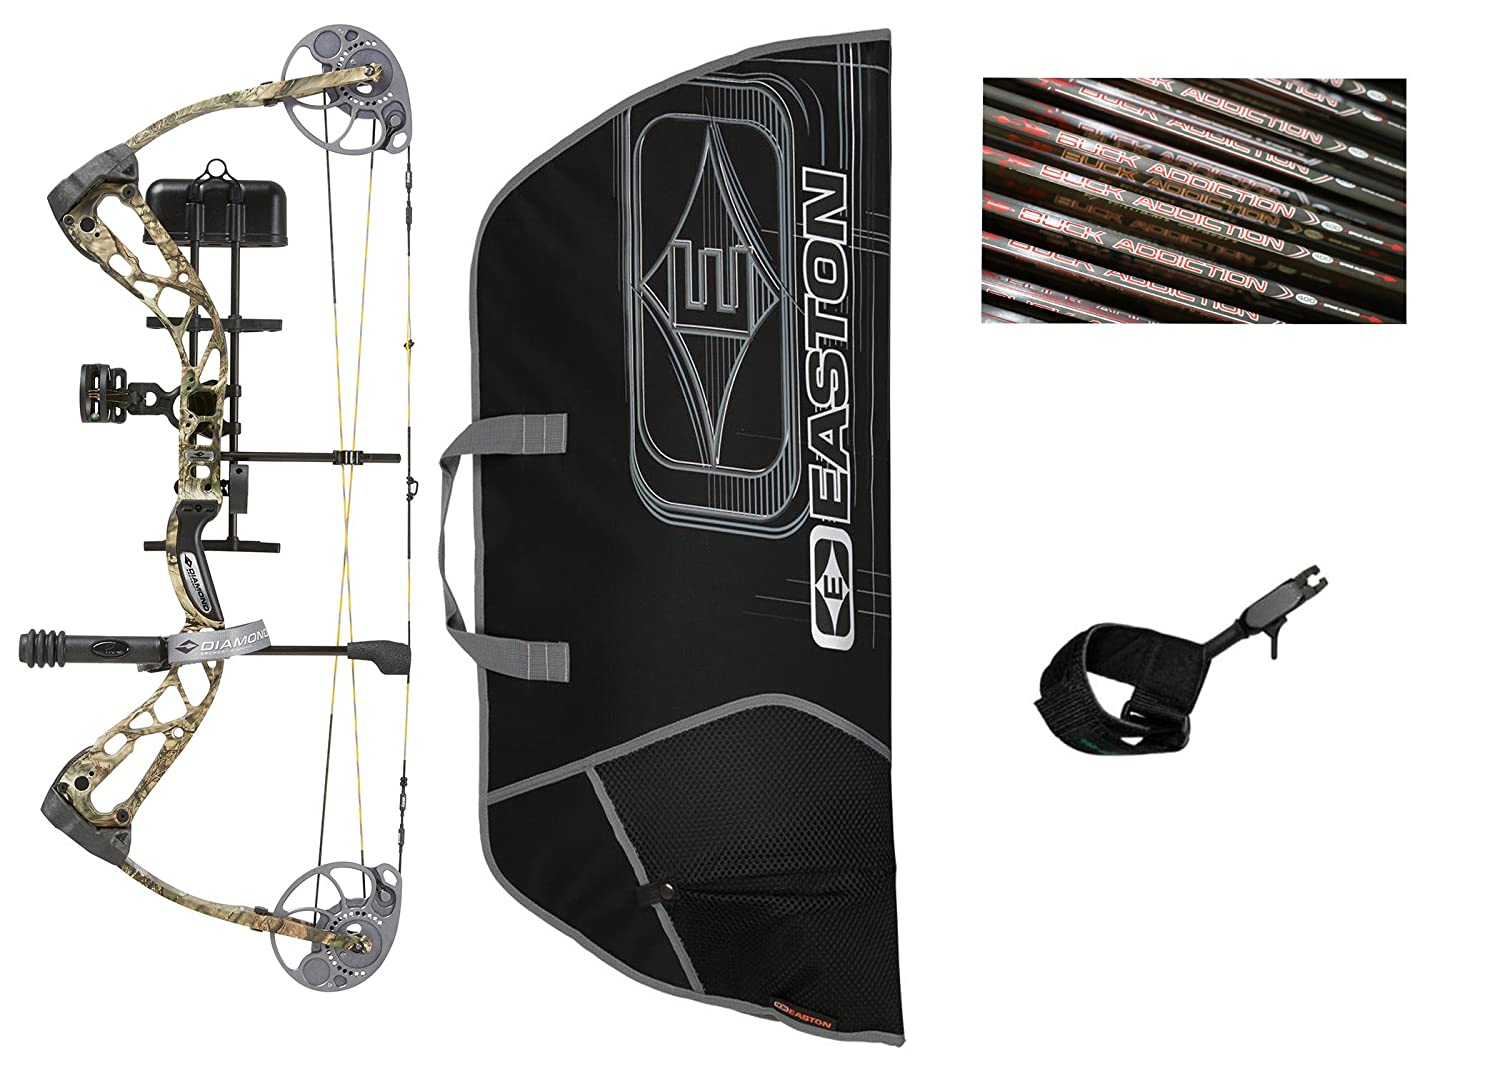 Diamond Edge SB-1 Compound Bow Mossy Oak Country Camo Ready to Hunt Package 7-70lbs Left Hand